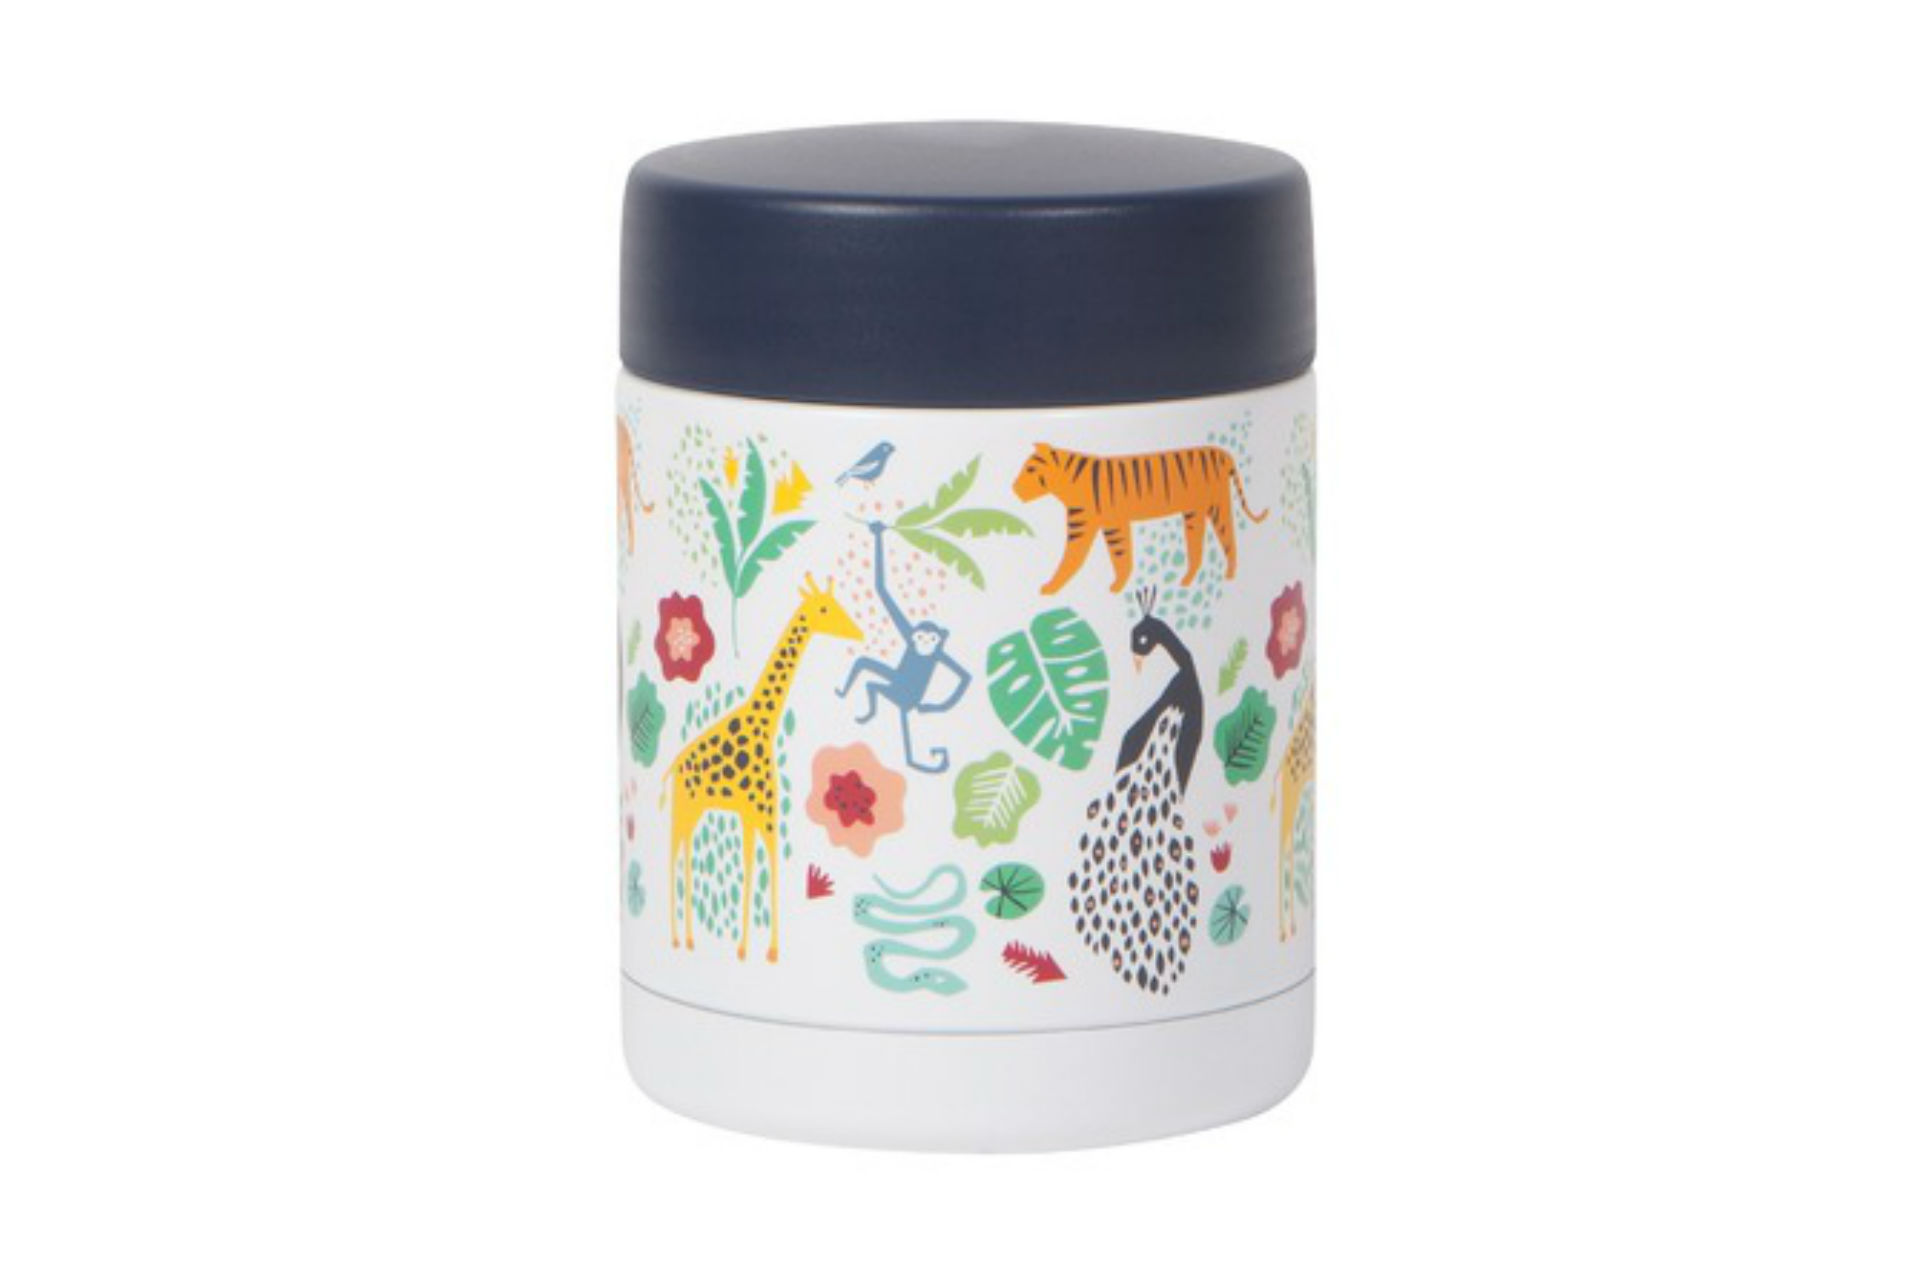 thermos with wild animal illustrations on it